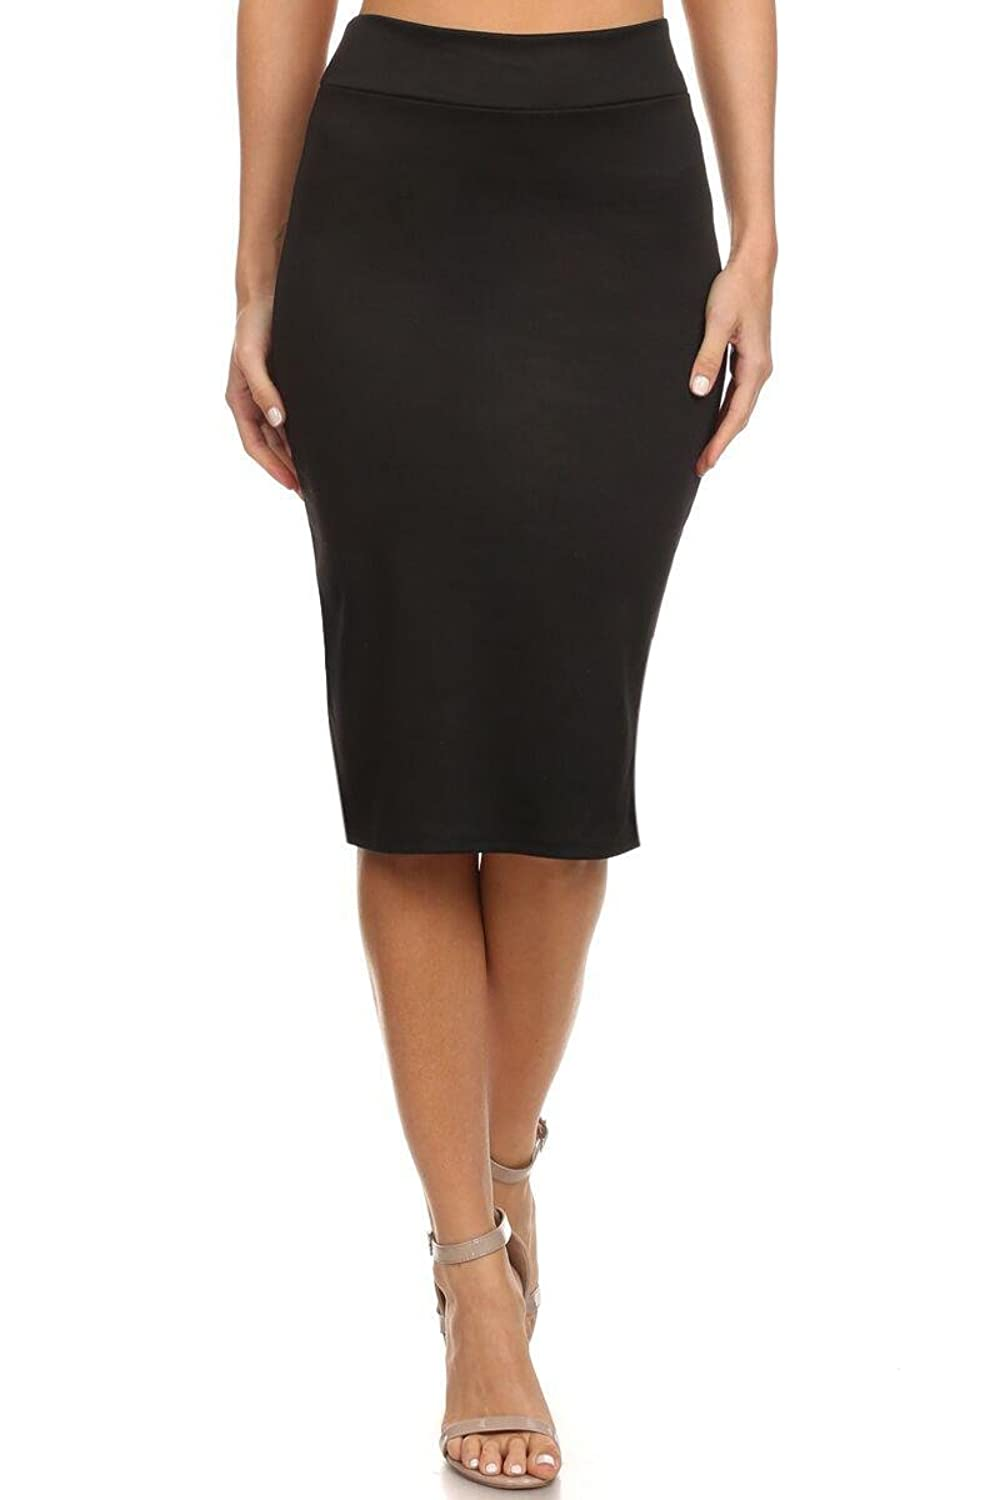 Cheap pencil skirts below the knee – Modern skirts blog for you